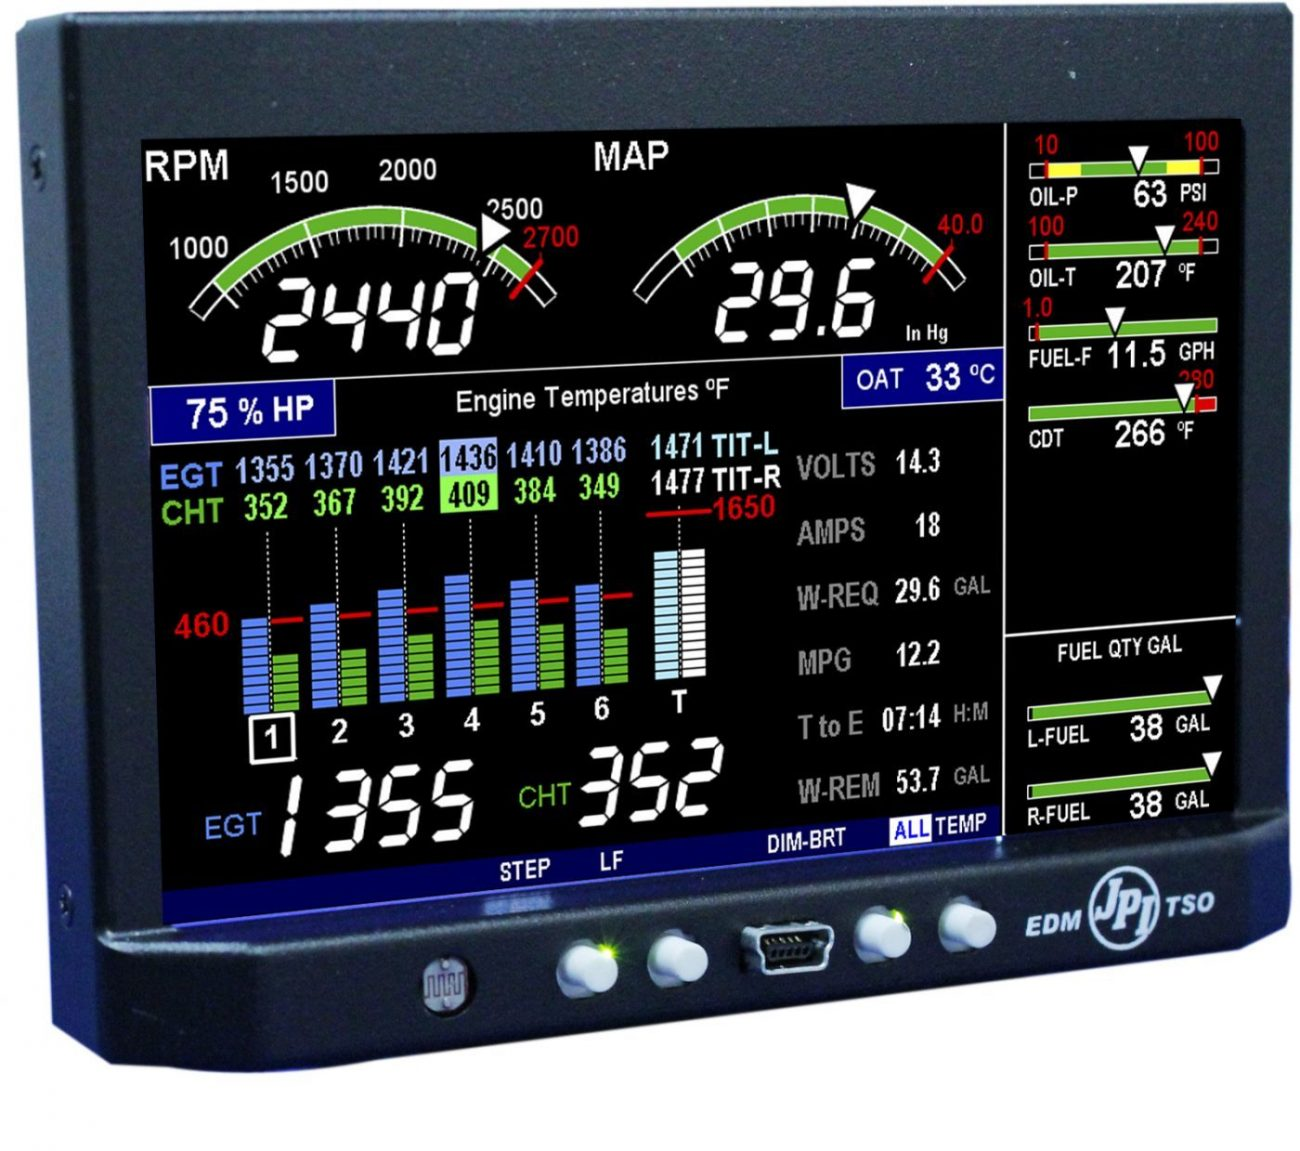 EDM 900 - Advanced Twin Piston Engine -Monitoring Instrument